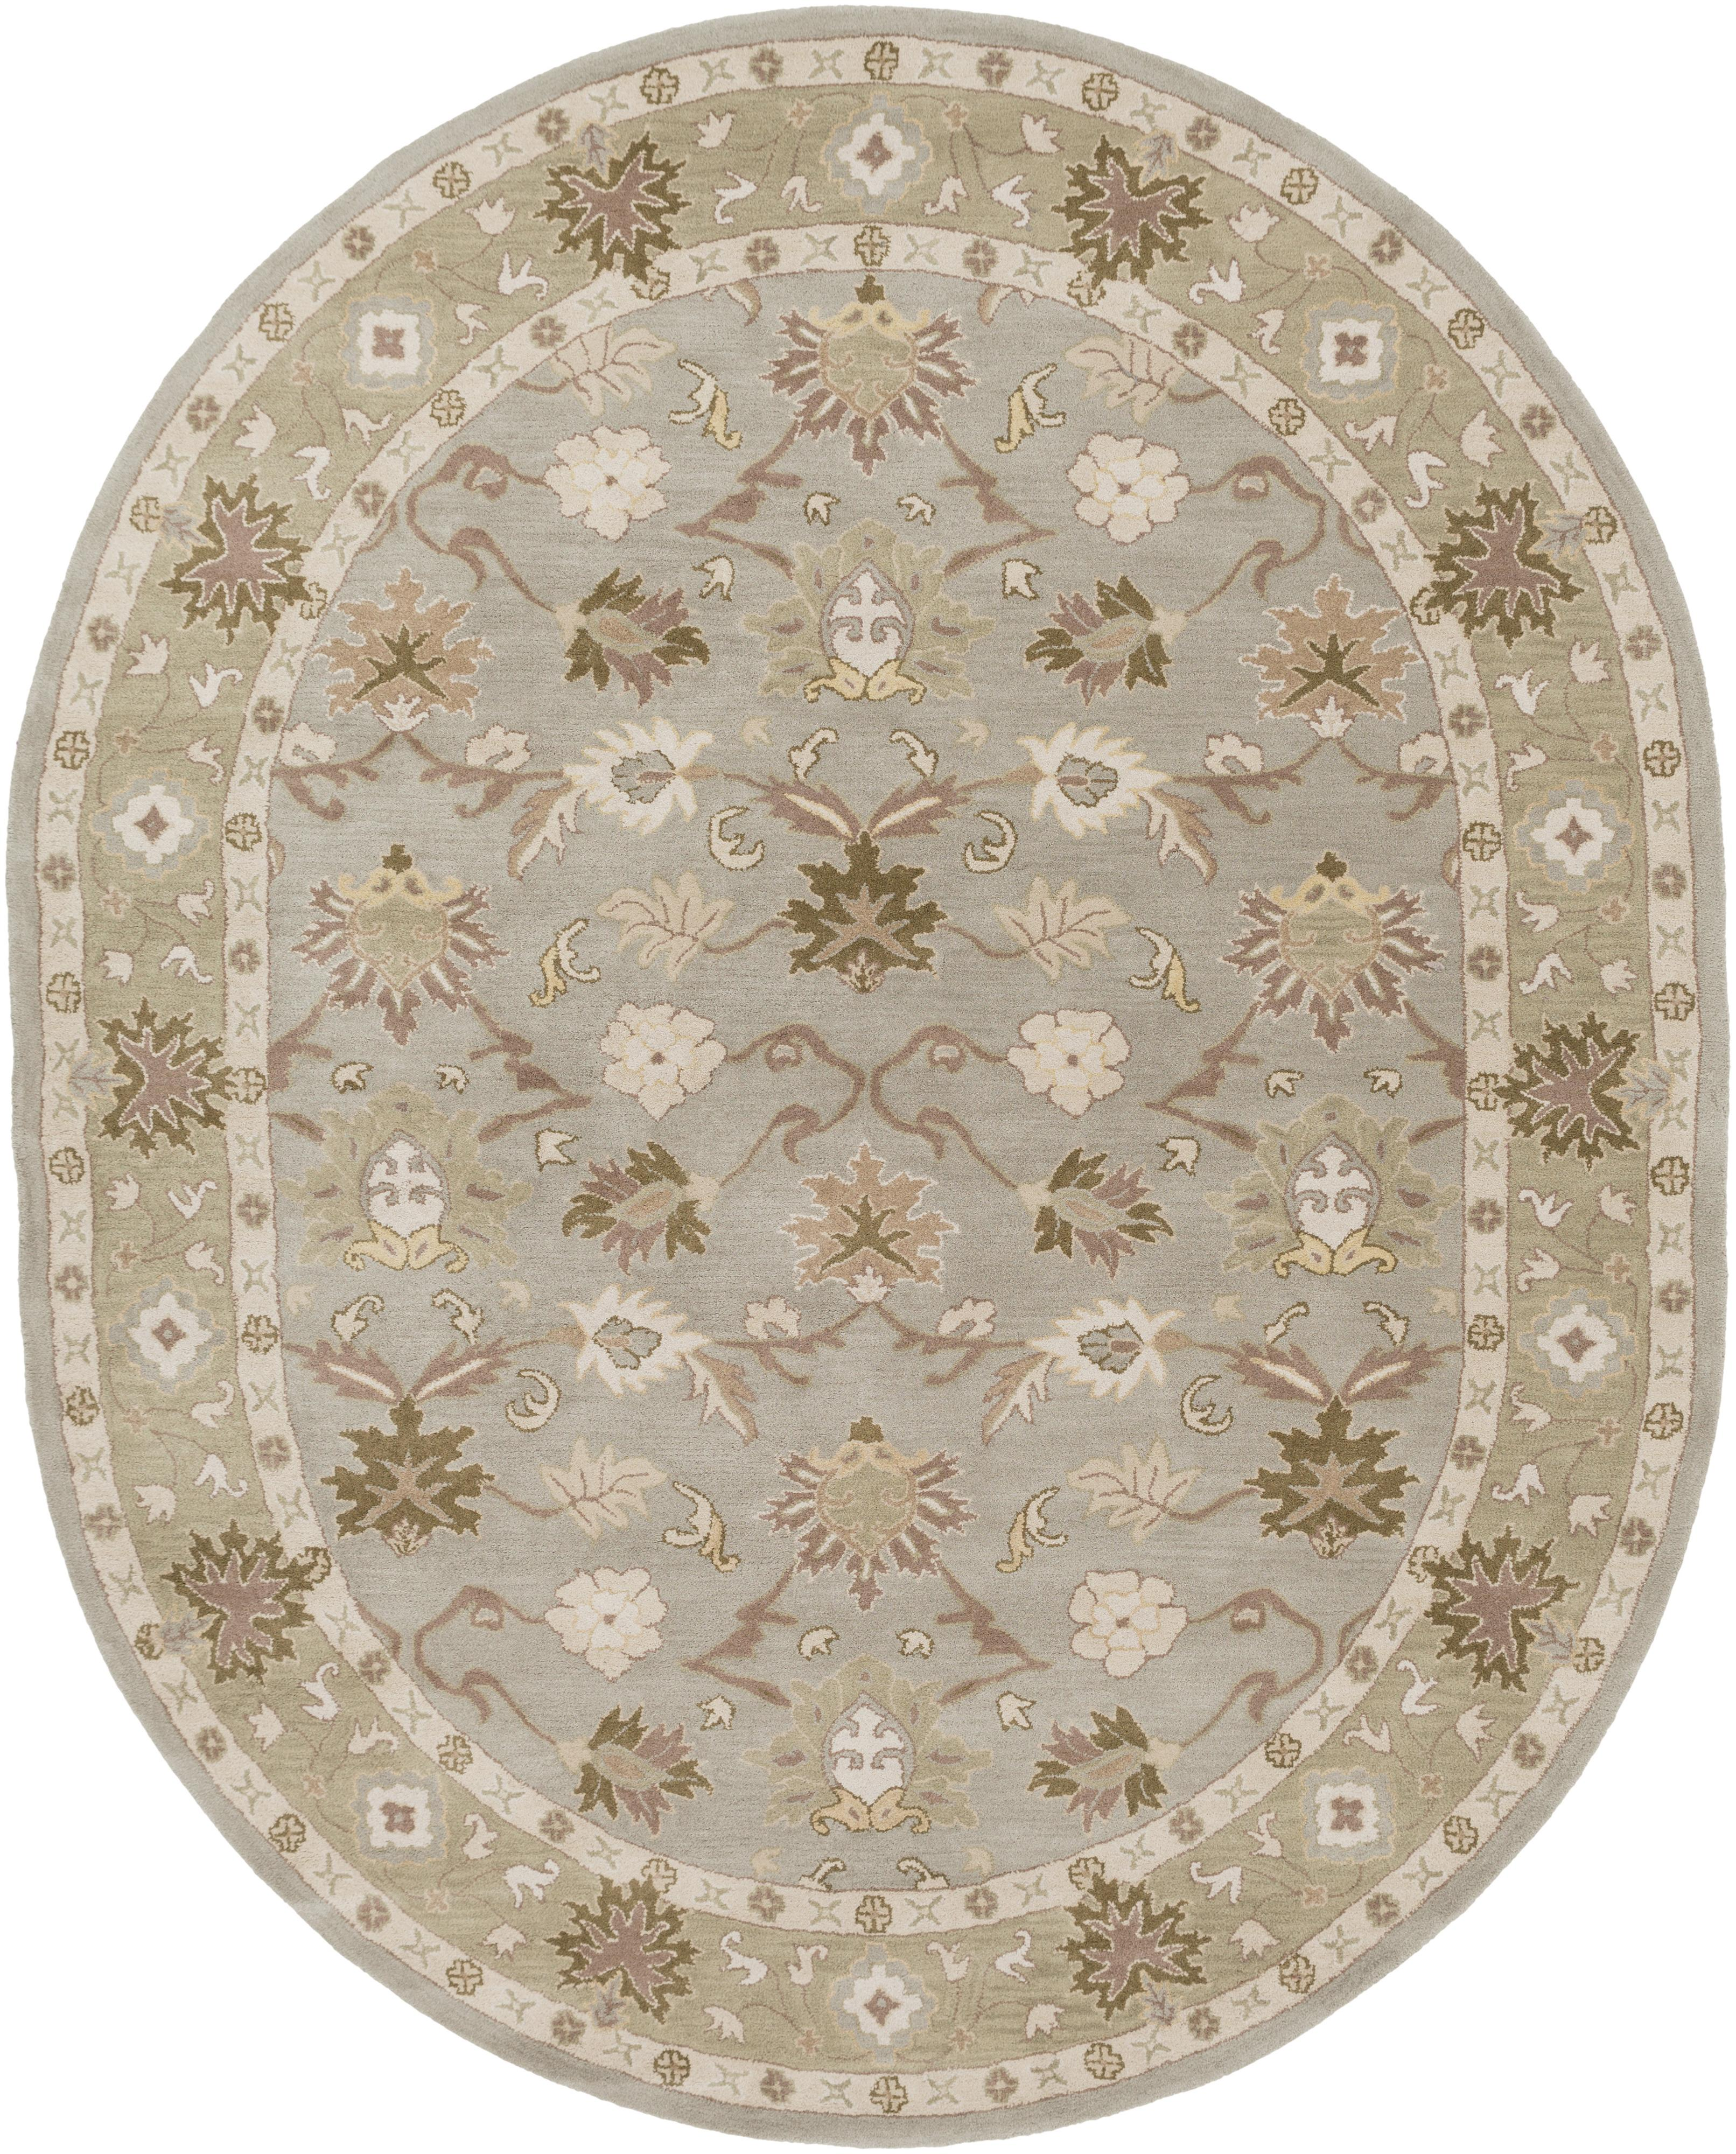 Oriental Rugs Hagerstown Md: 6' X 9' Oval By Surya